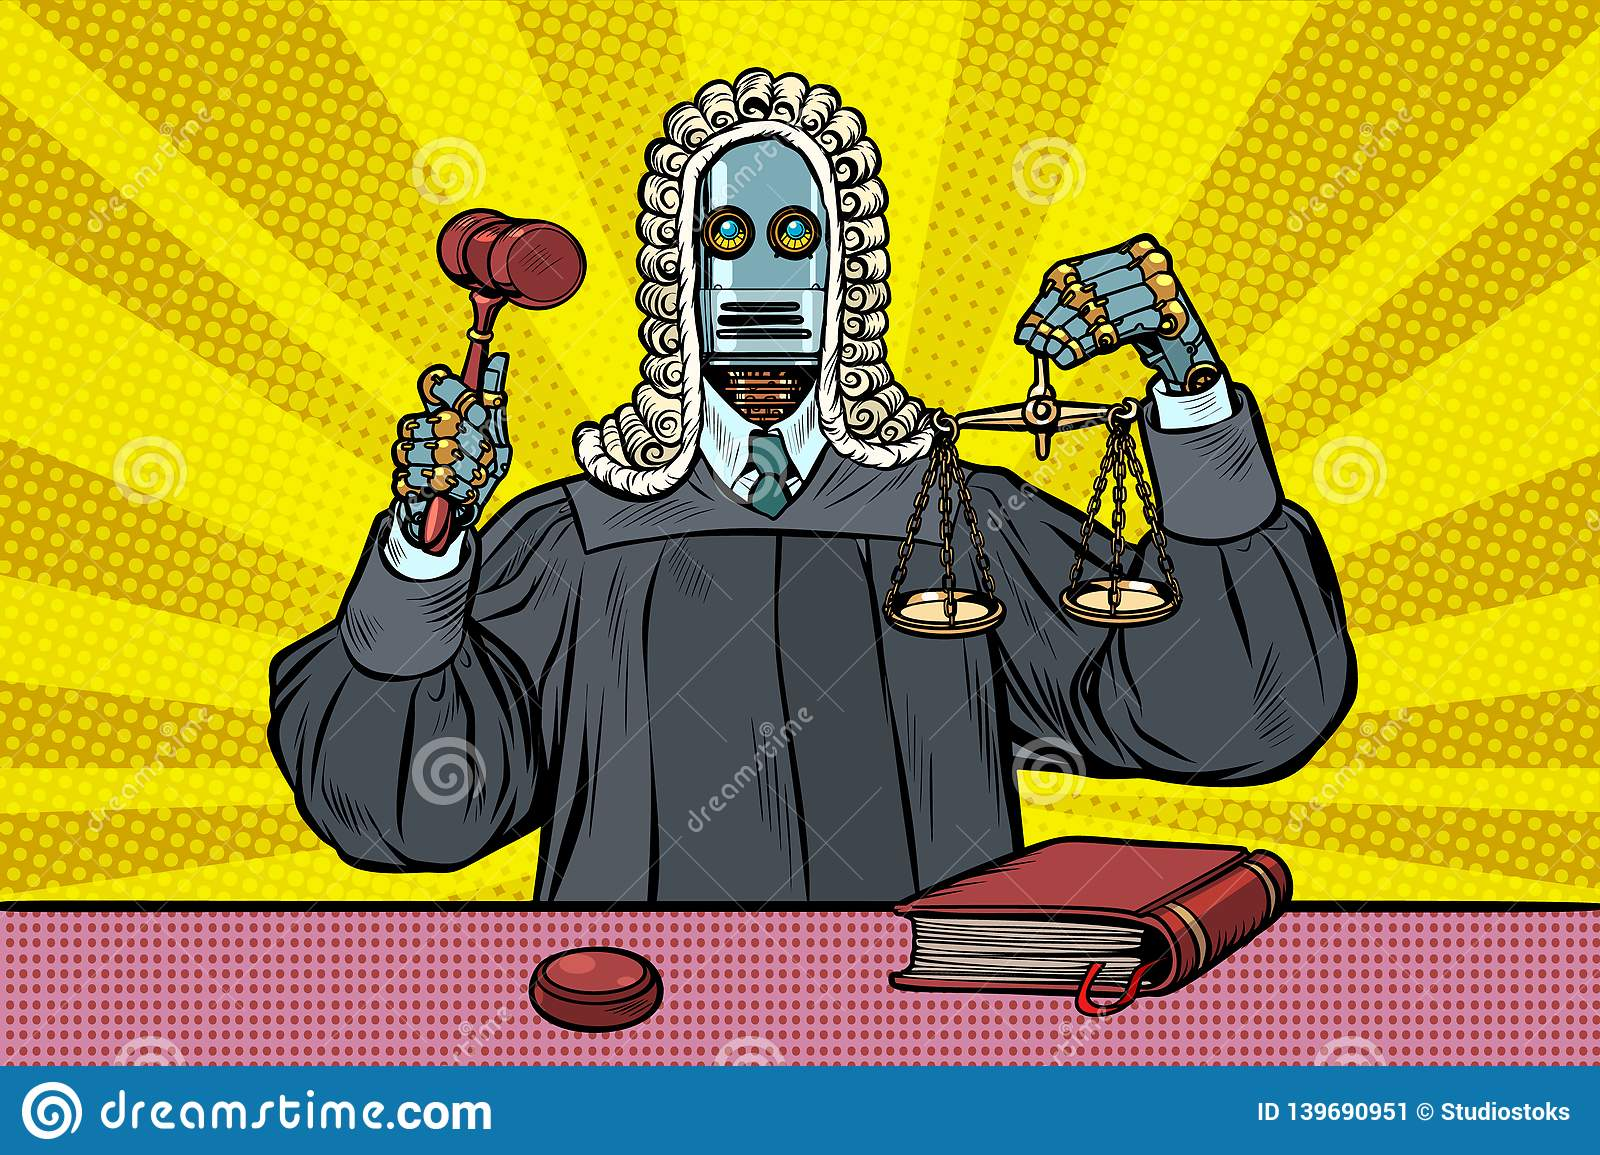 Robot judge in robes and wig